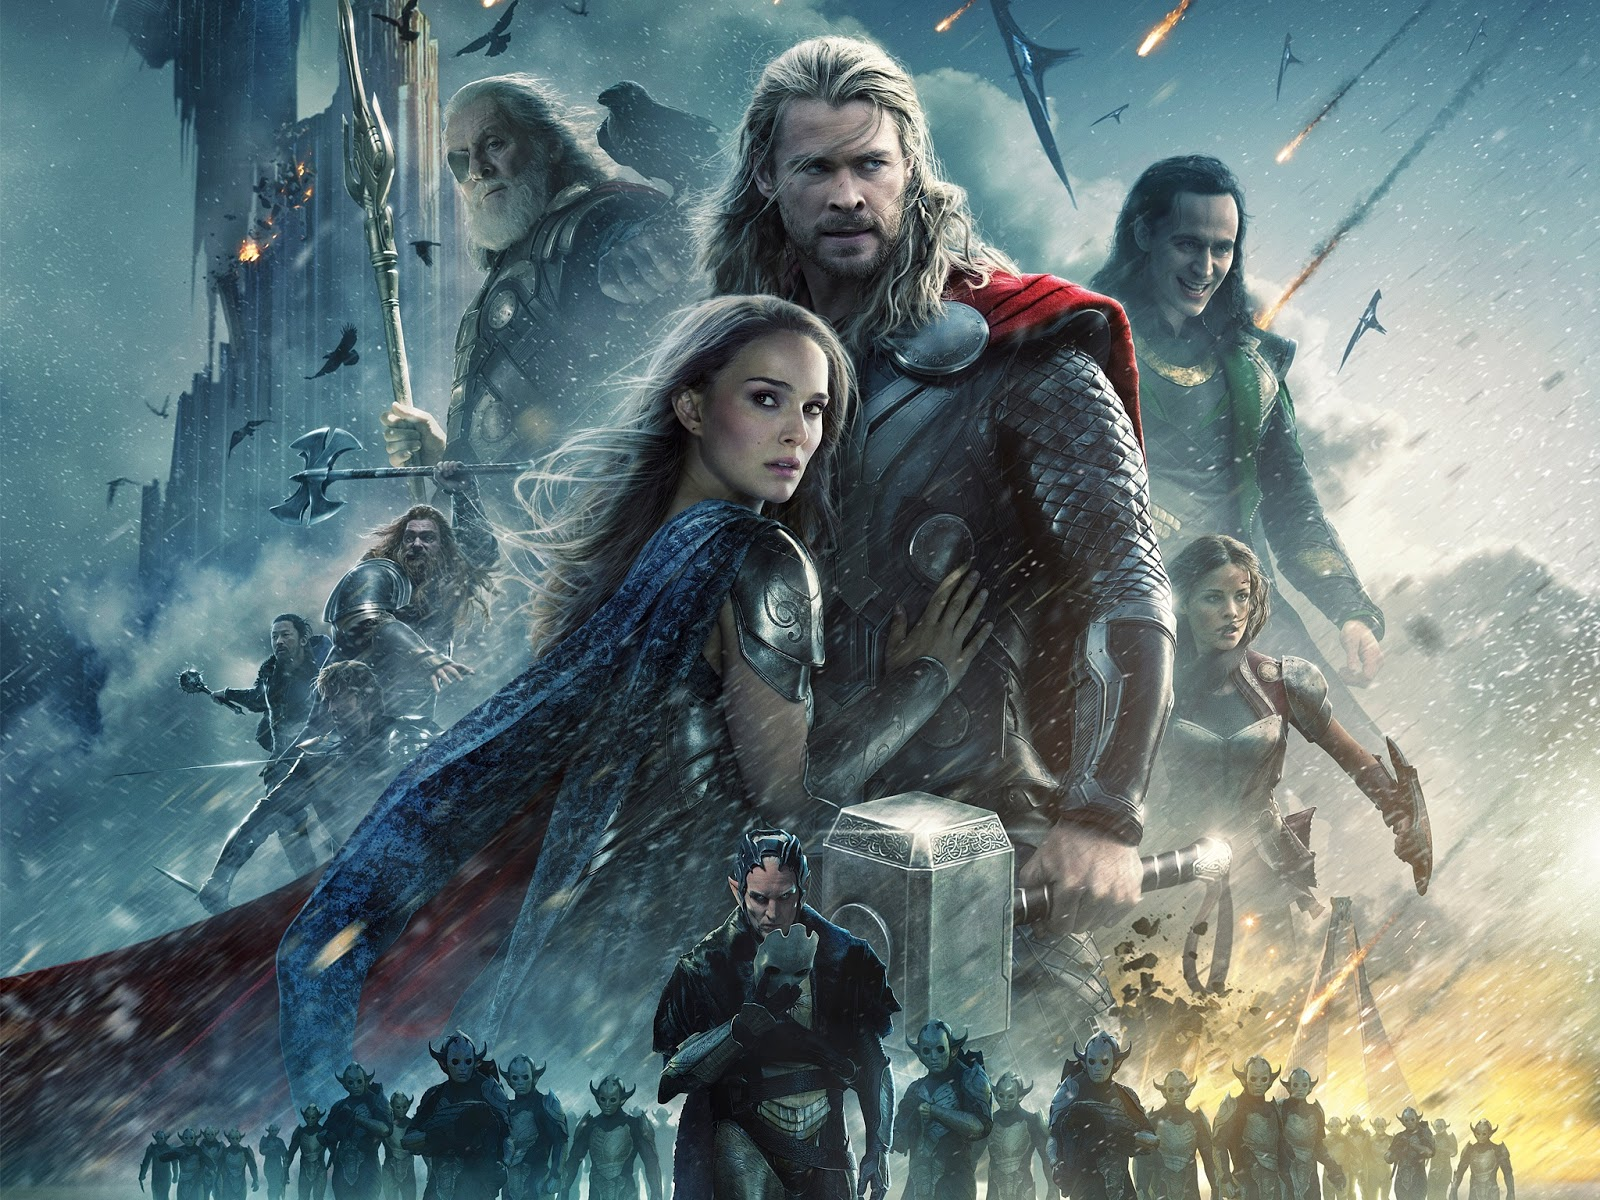 2013 Thor 2 The Dark World -  A Christian Perspective